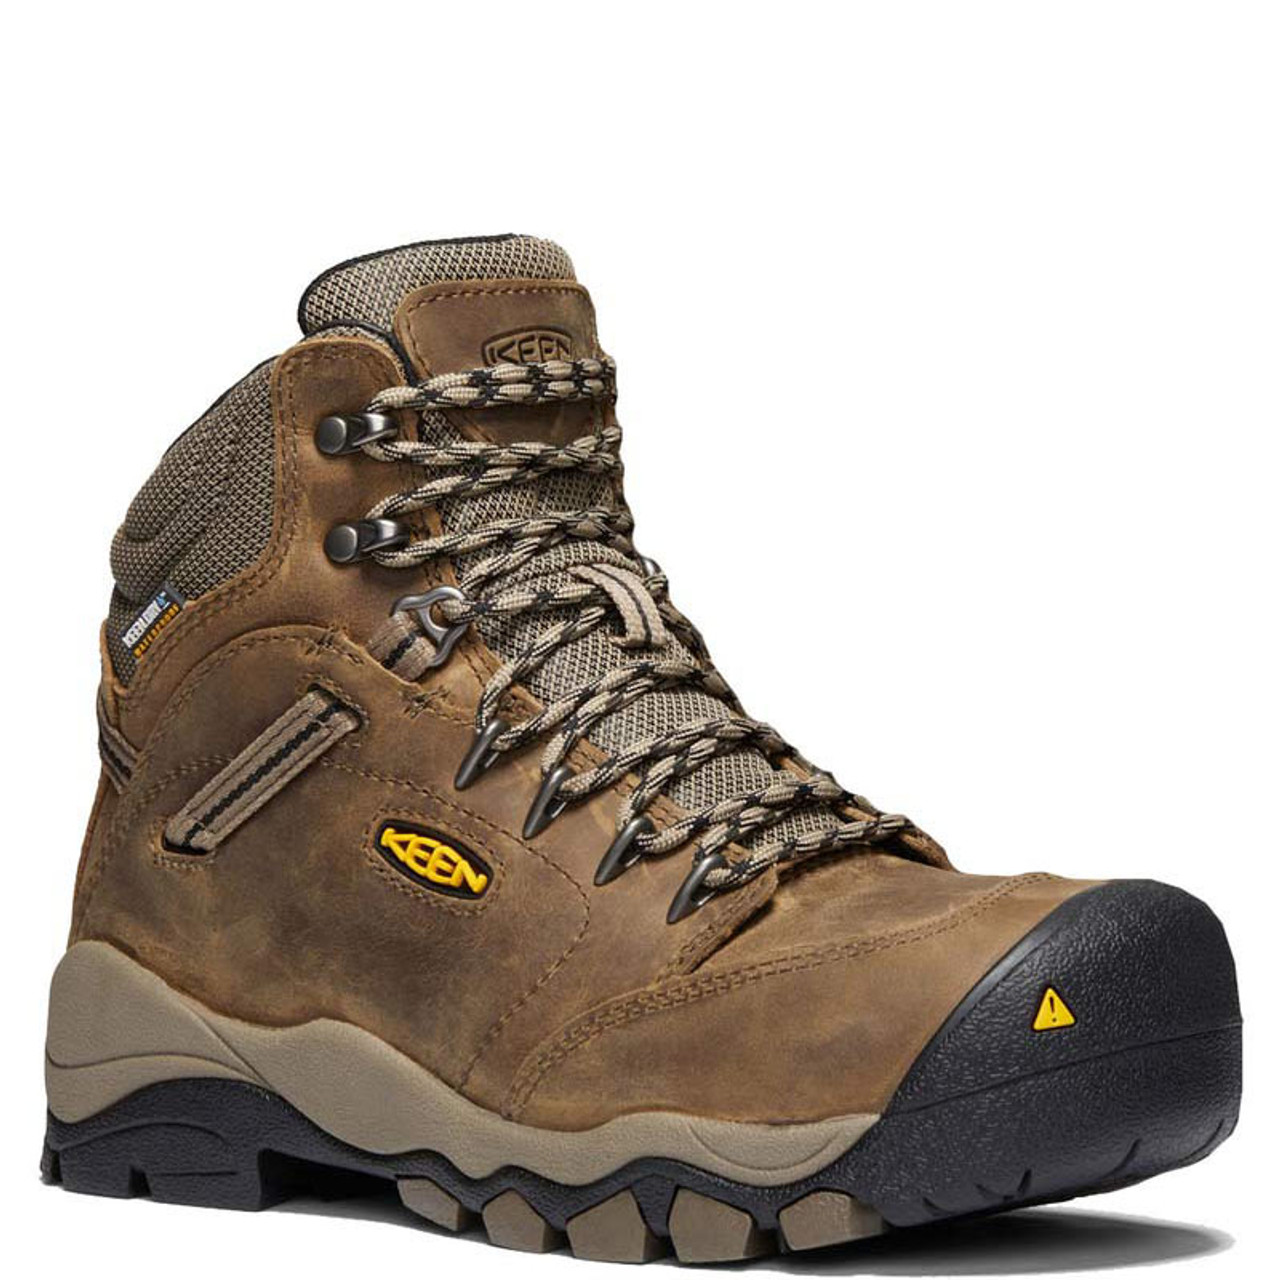 Keen Utility 1020022 Women's CANBY Non